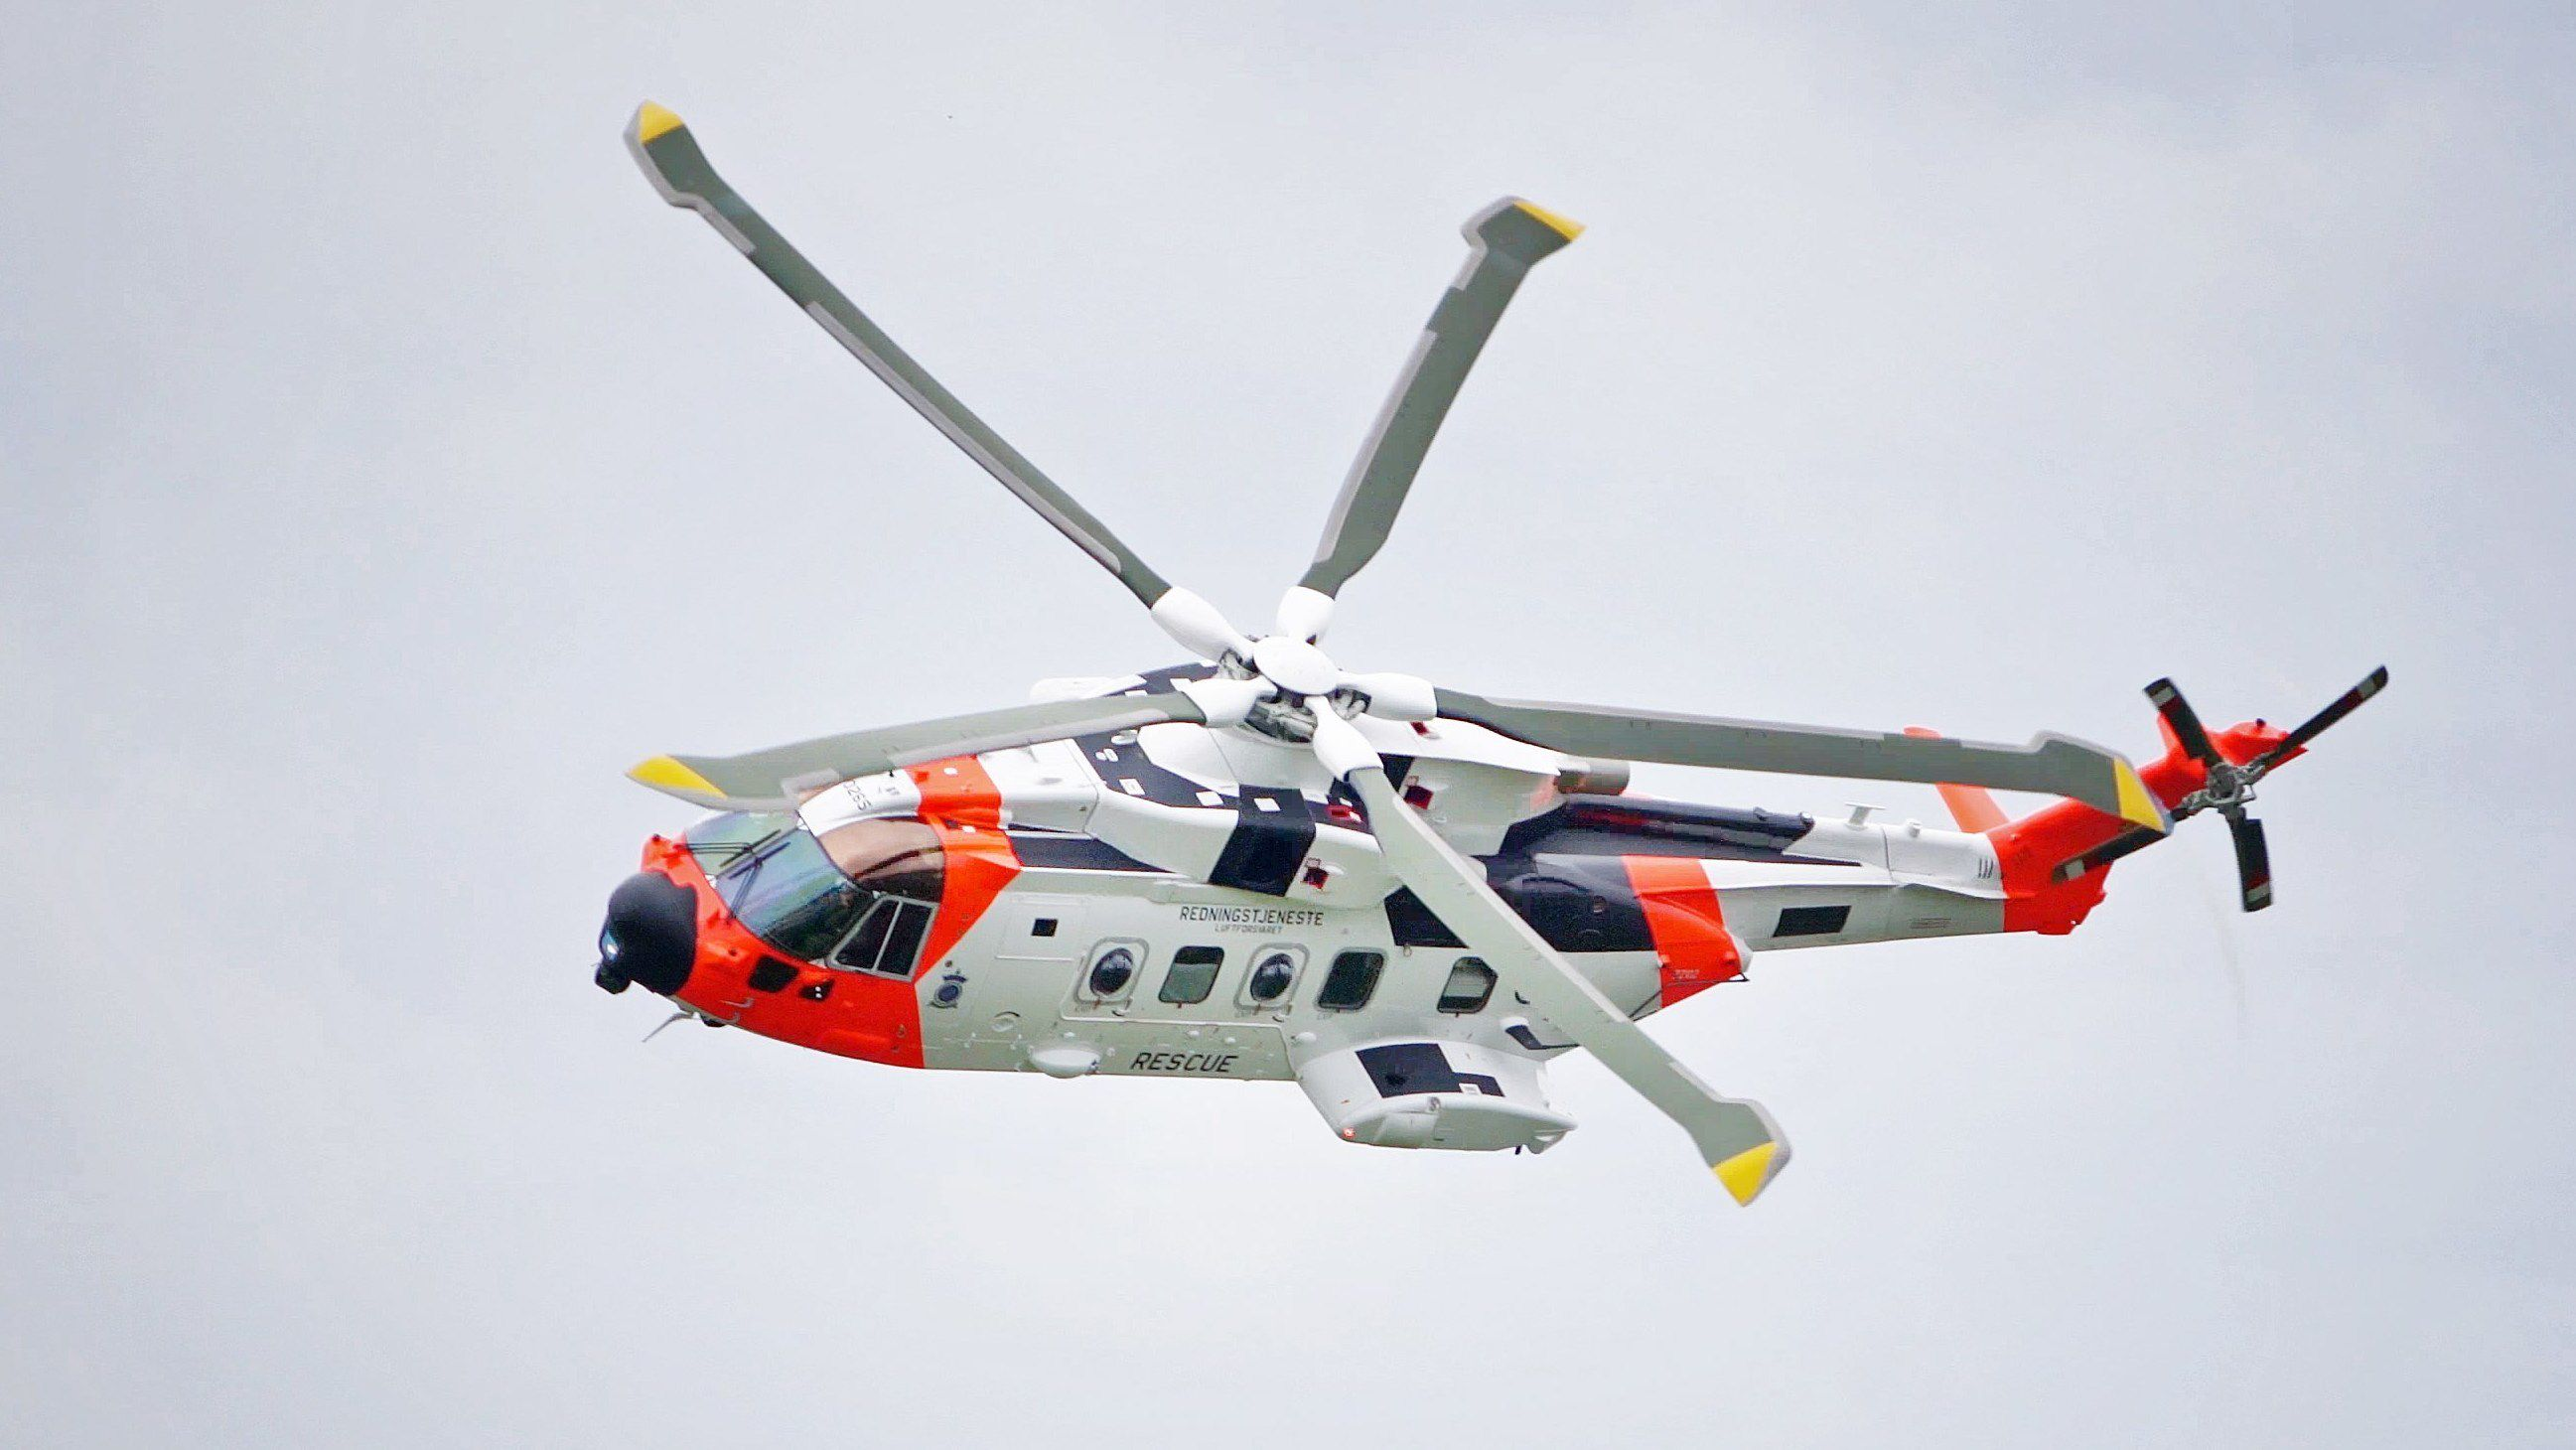 Sea king helikopter